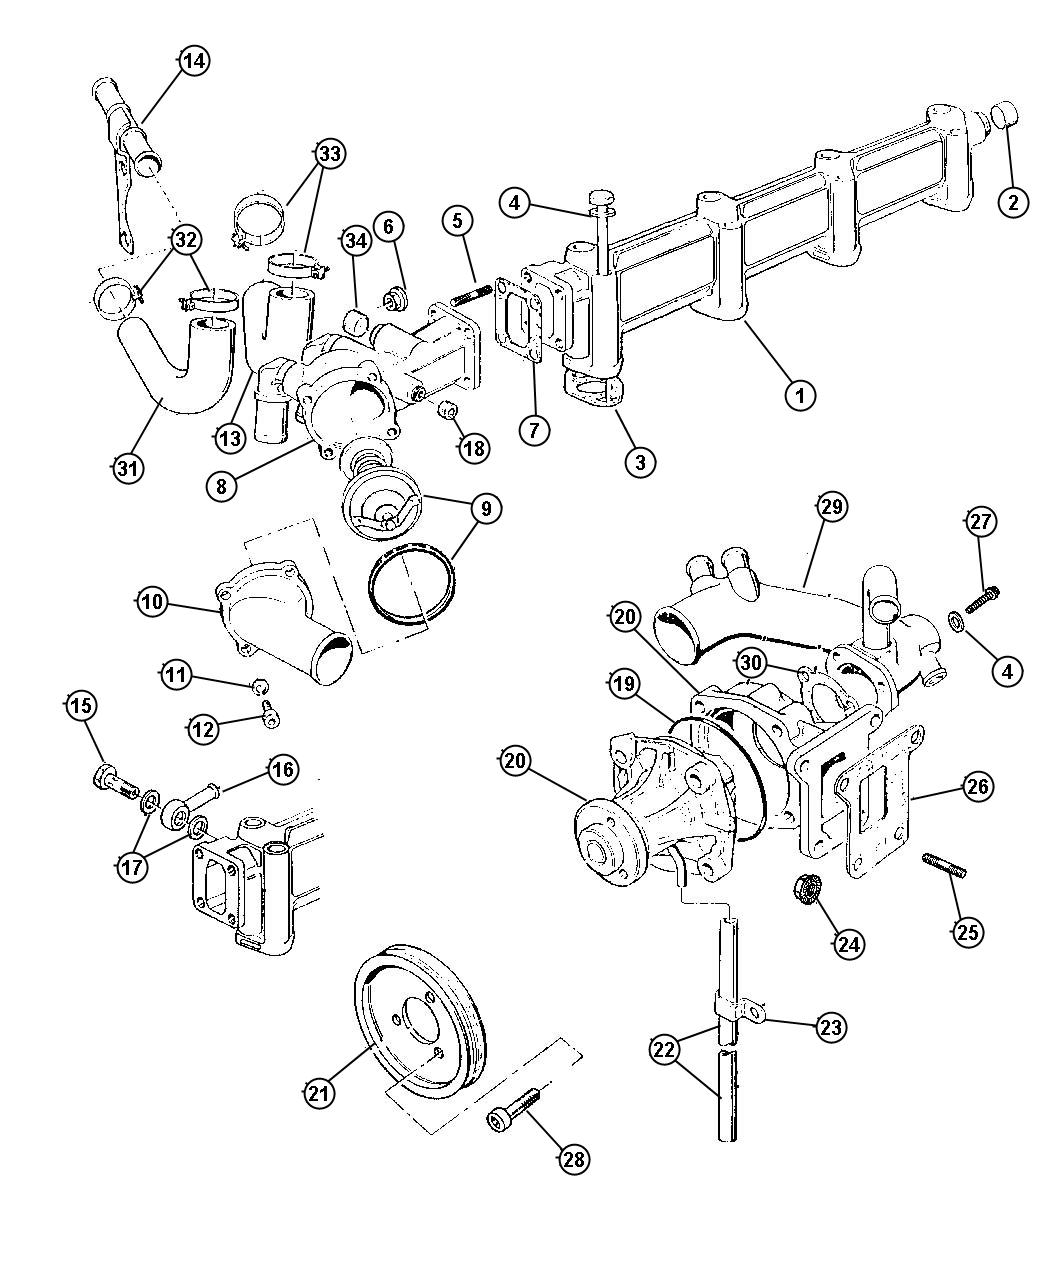 tags: #07 ford fusion belt diagram#ford 3#1992 2 3 liter ford engine  schematic#1992 2 3 liter ford engine vacuum schematic#1993 ford tempo engine  diagram 2